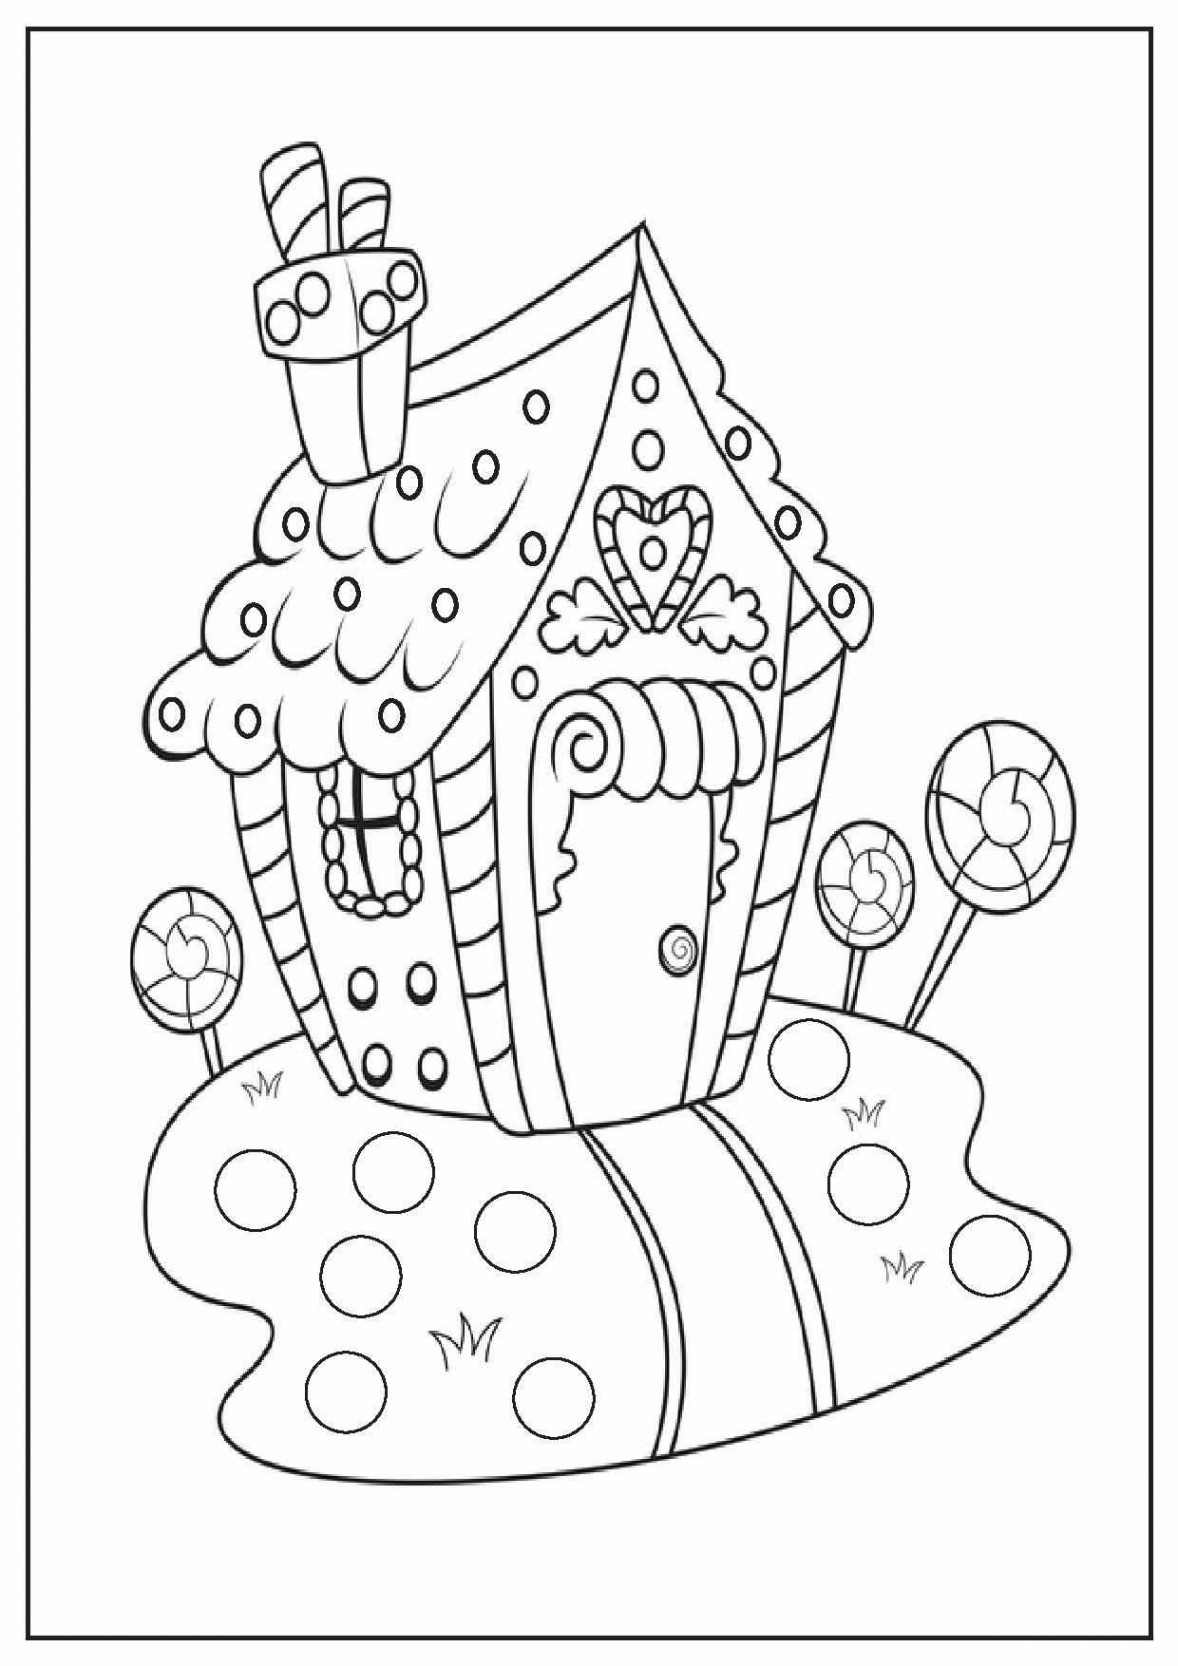 Christmas Coloring Pages For 6th Grade With 1 Printable Educations Kids